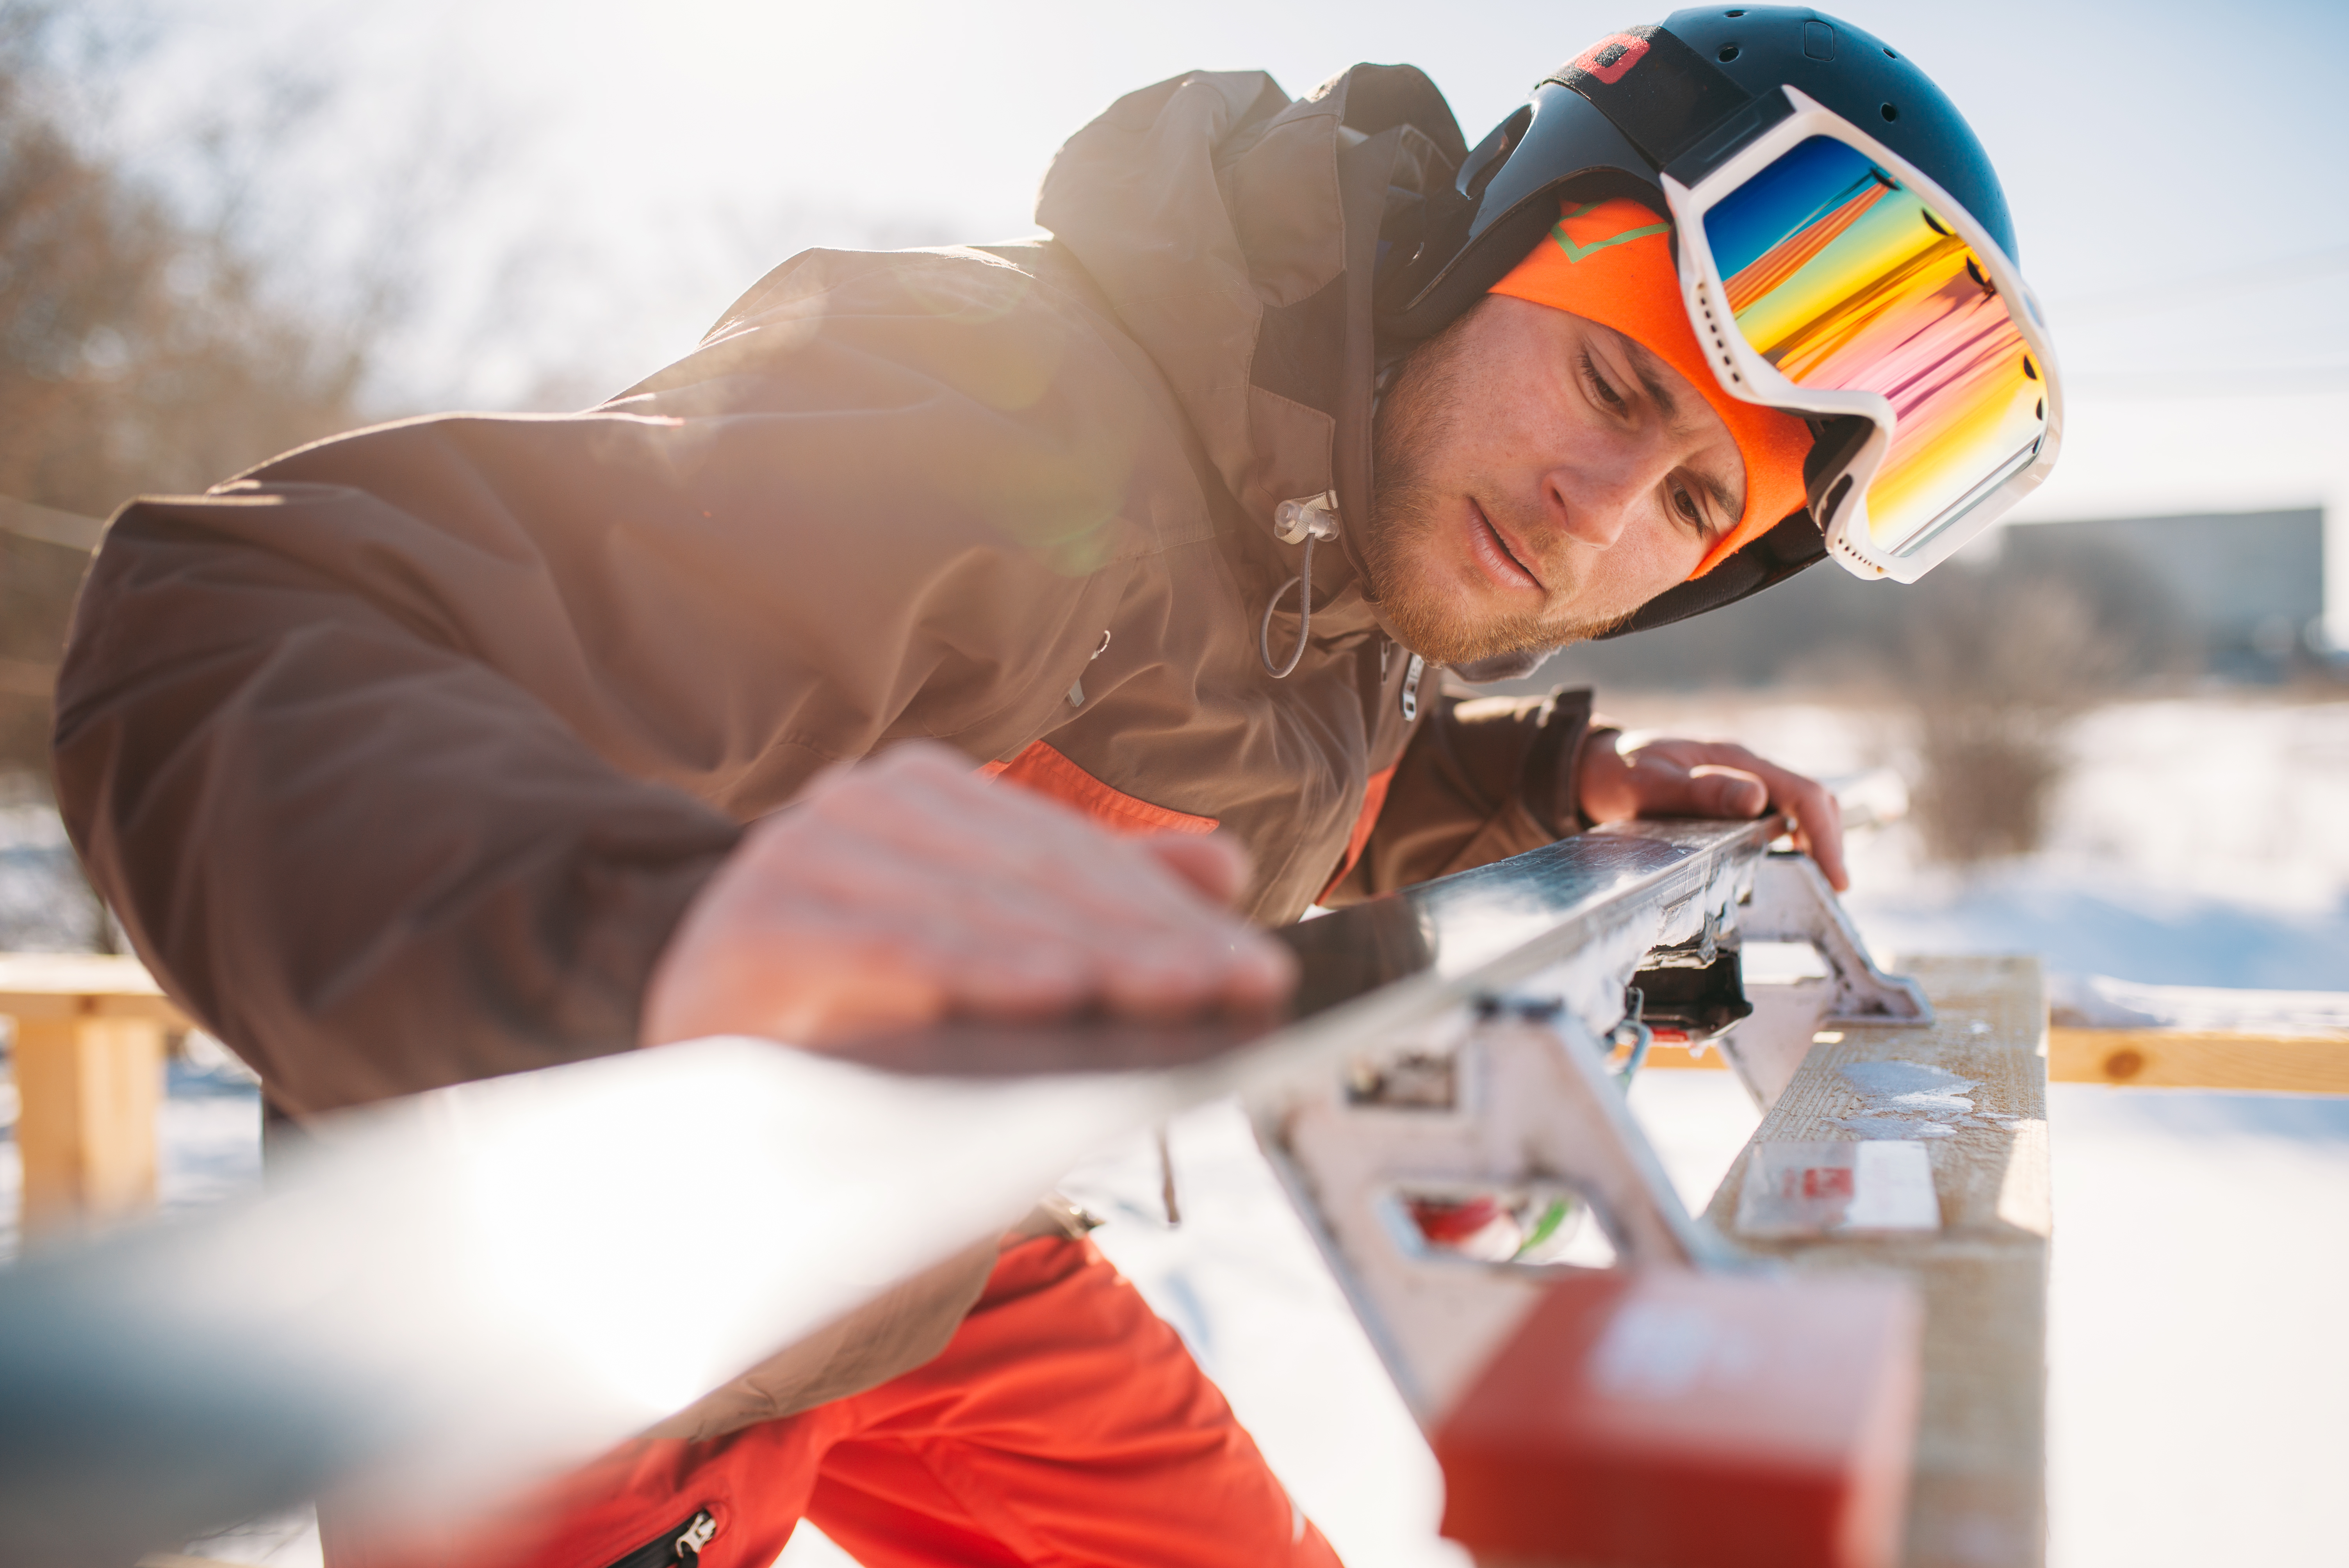 male skier checks skis before skiing winter sport